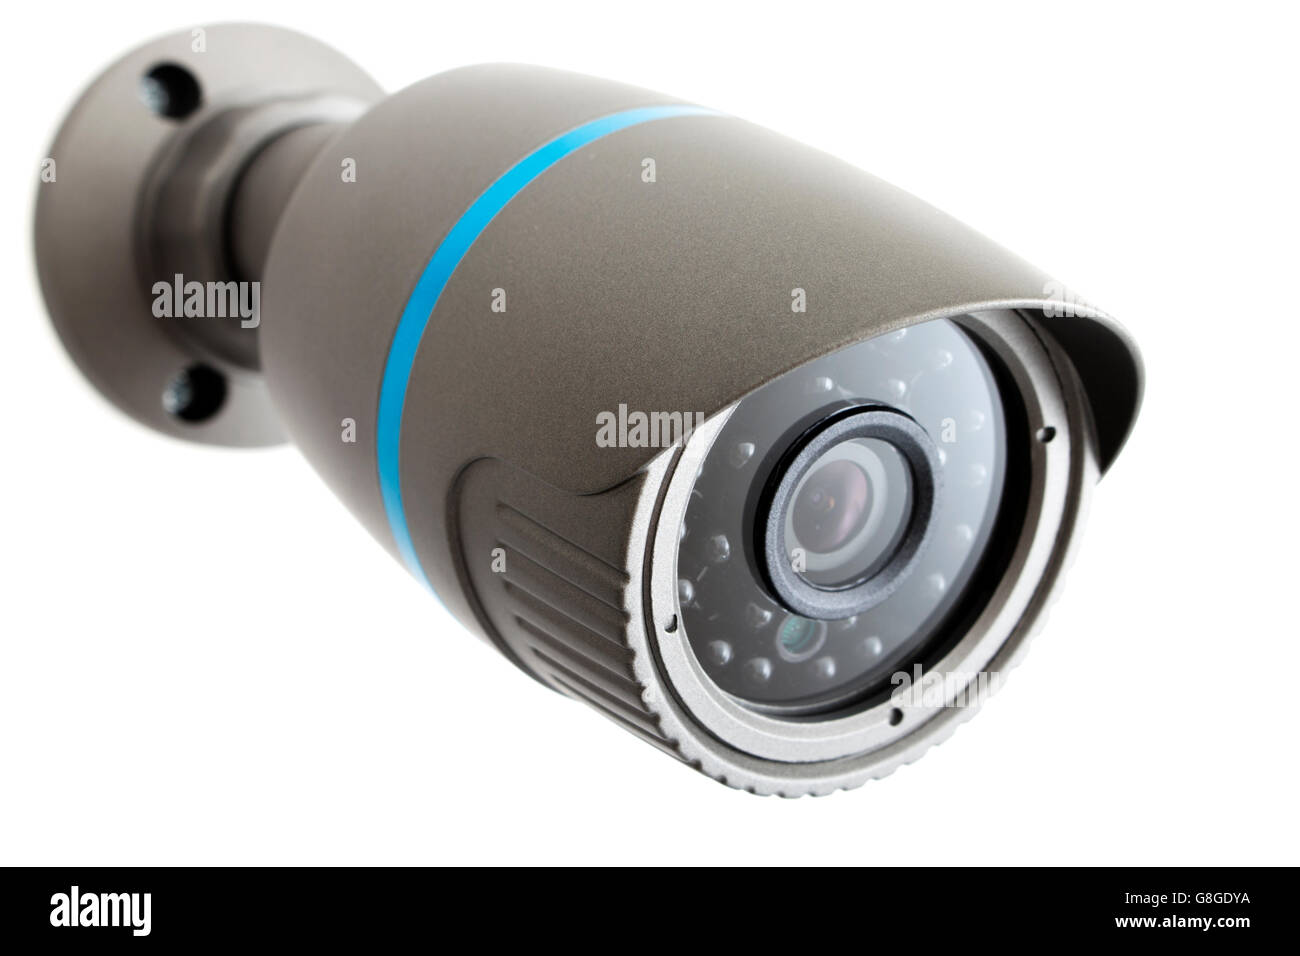 IP camera, security surveillance ip-cam isolated on white - Stock Image